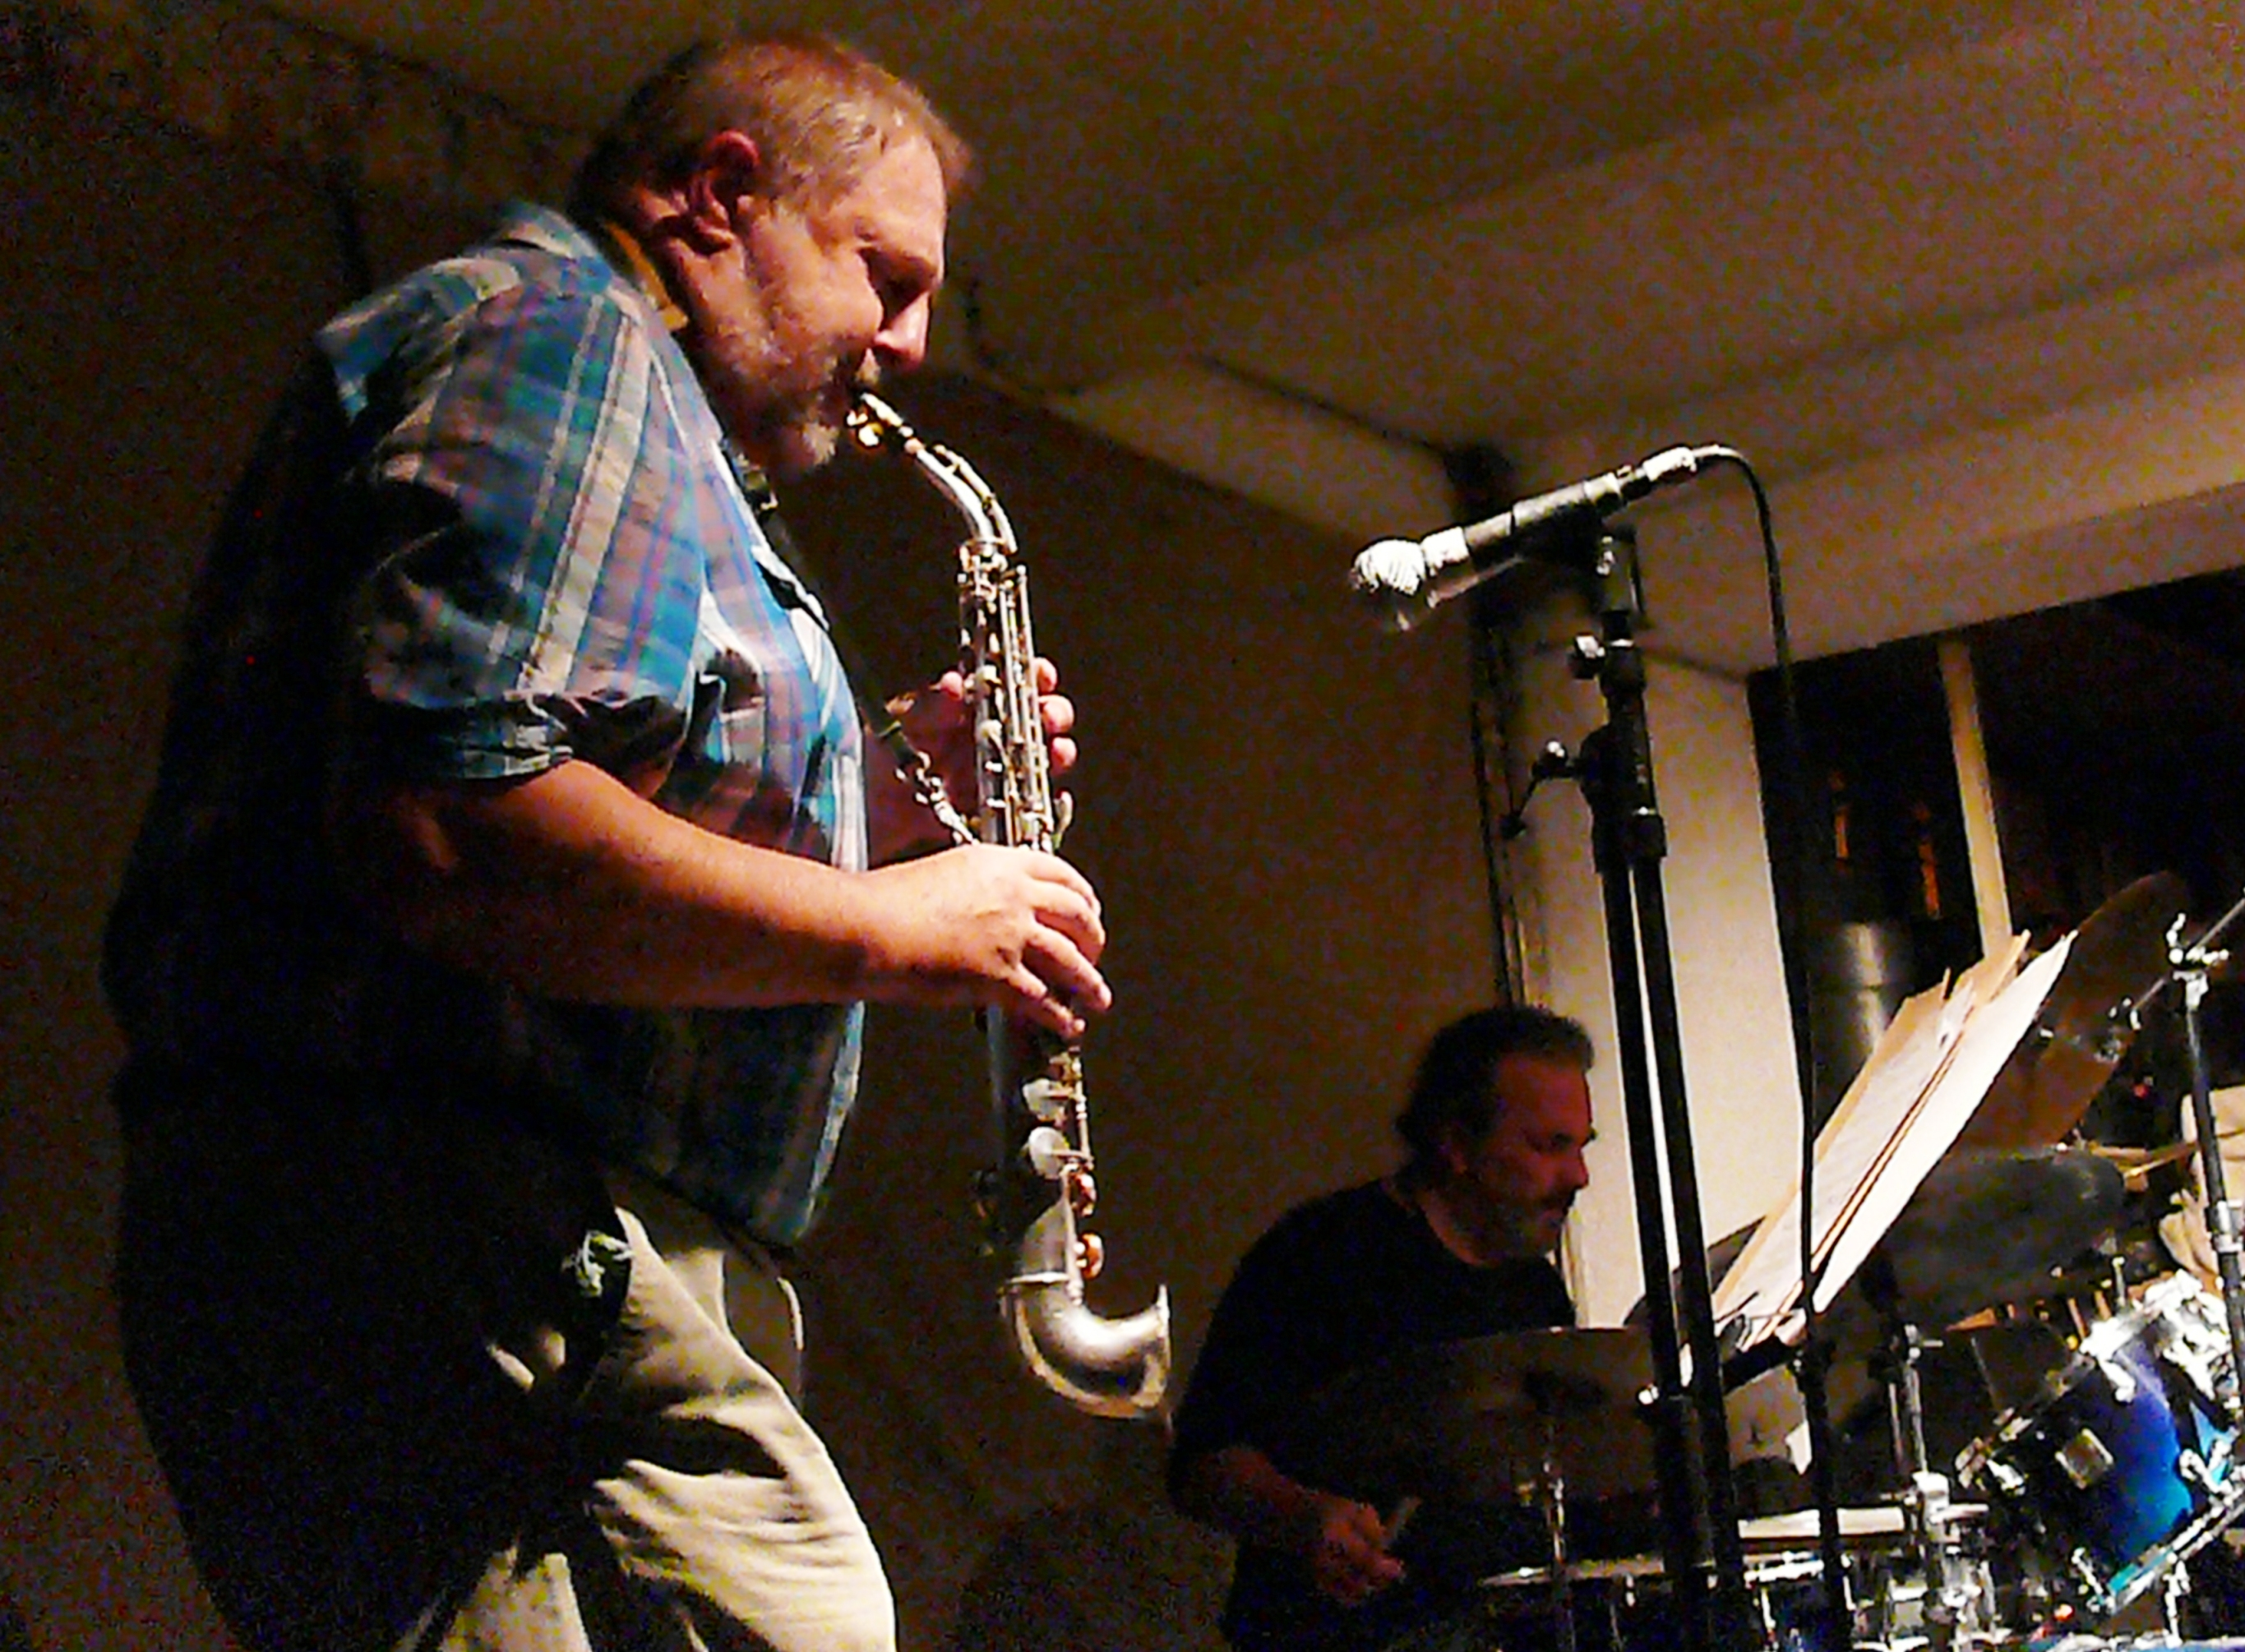 Paul dunmall and tony bianco at cafe oto, london in july 2013